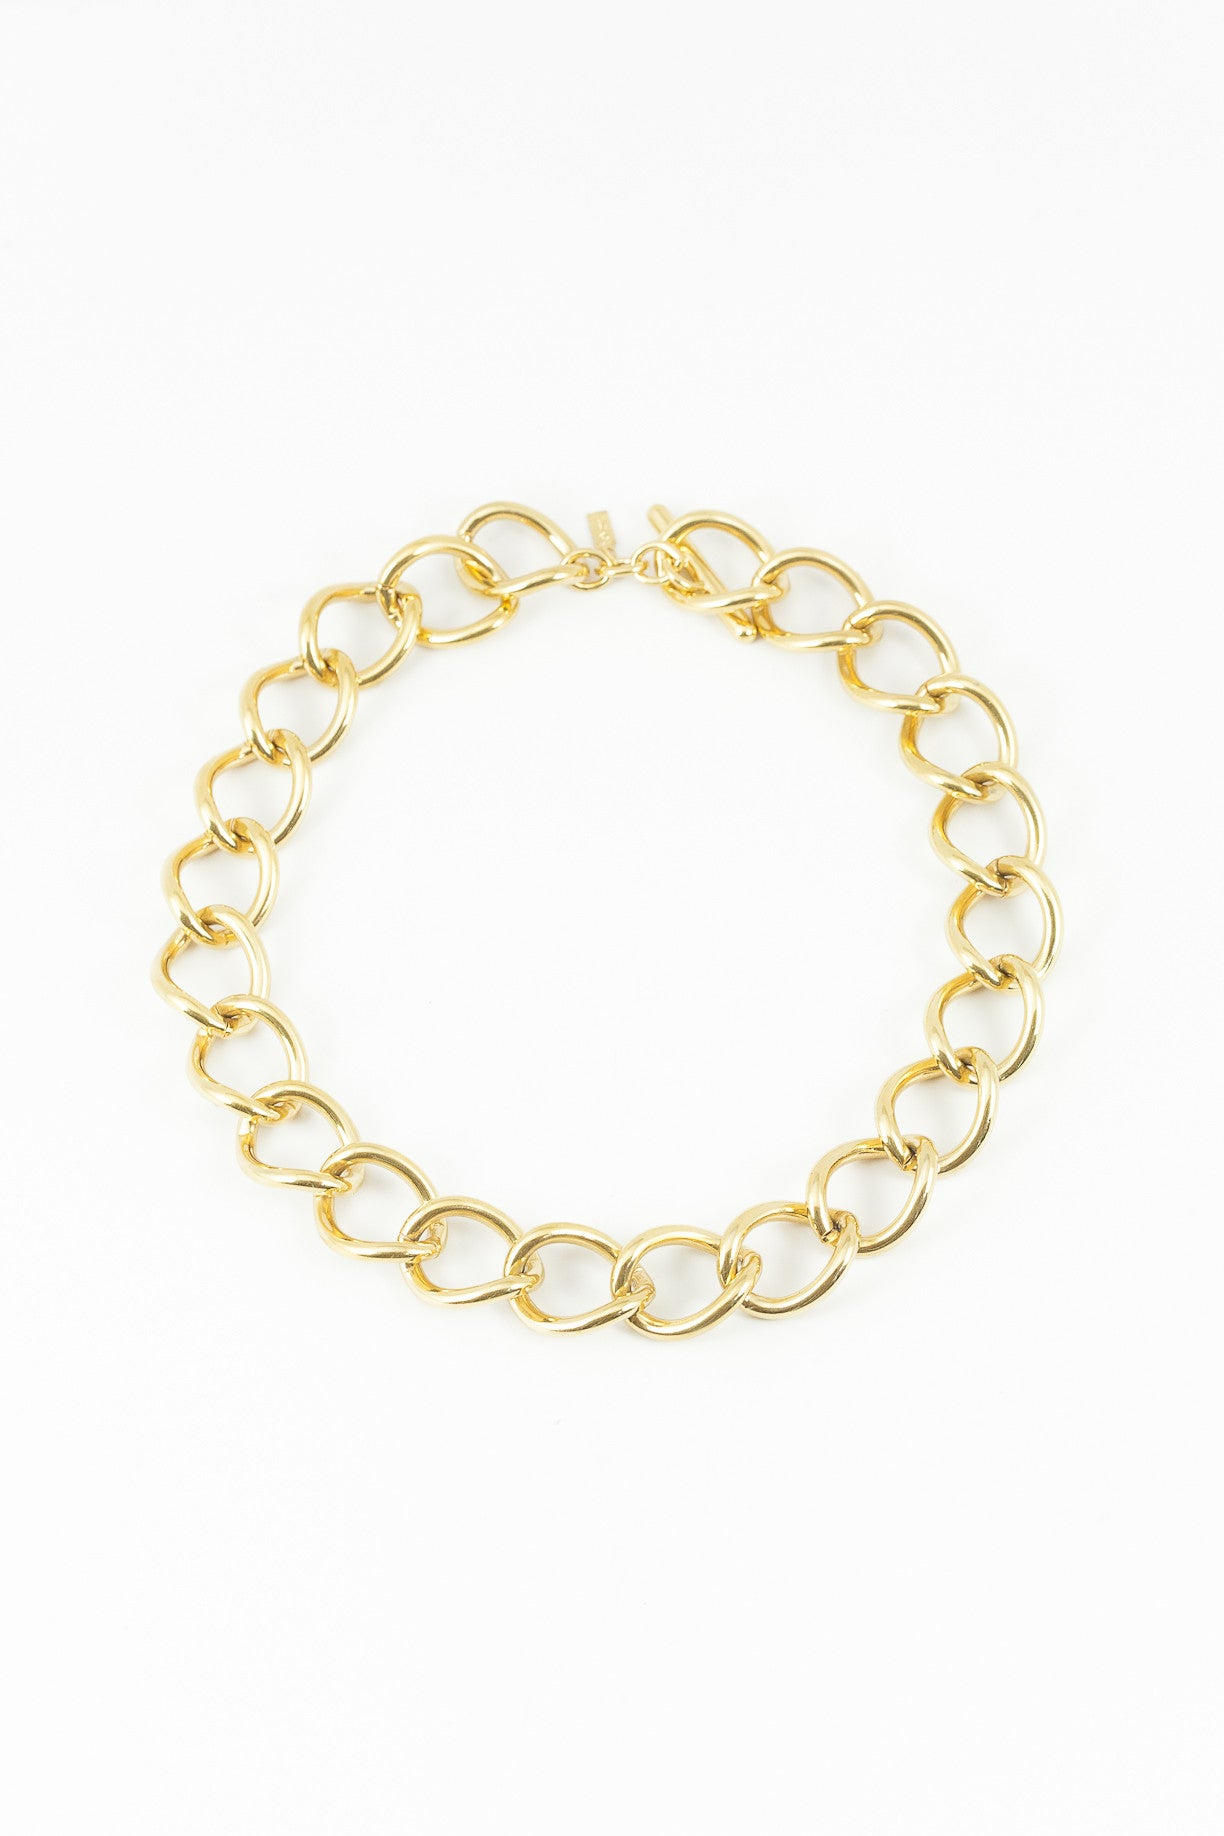 70's__Monet__Classic Chunky Chain Necklace